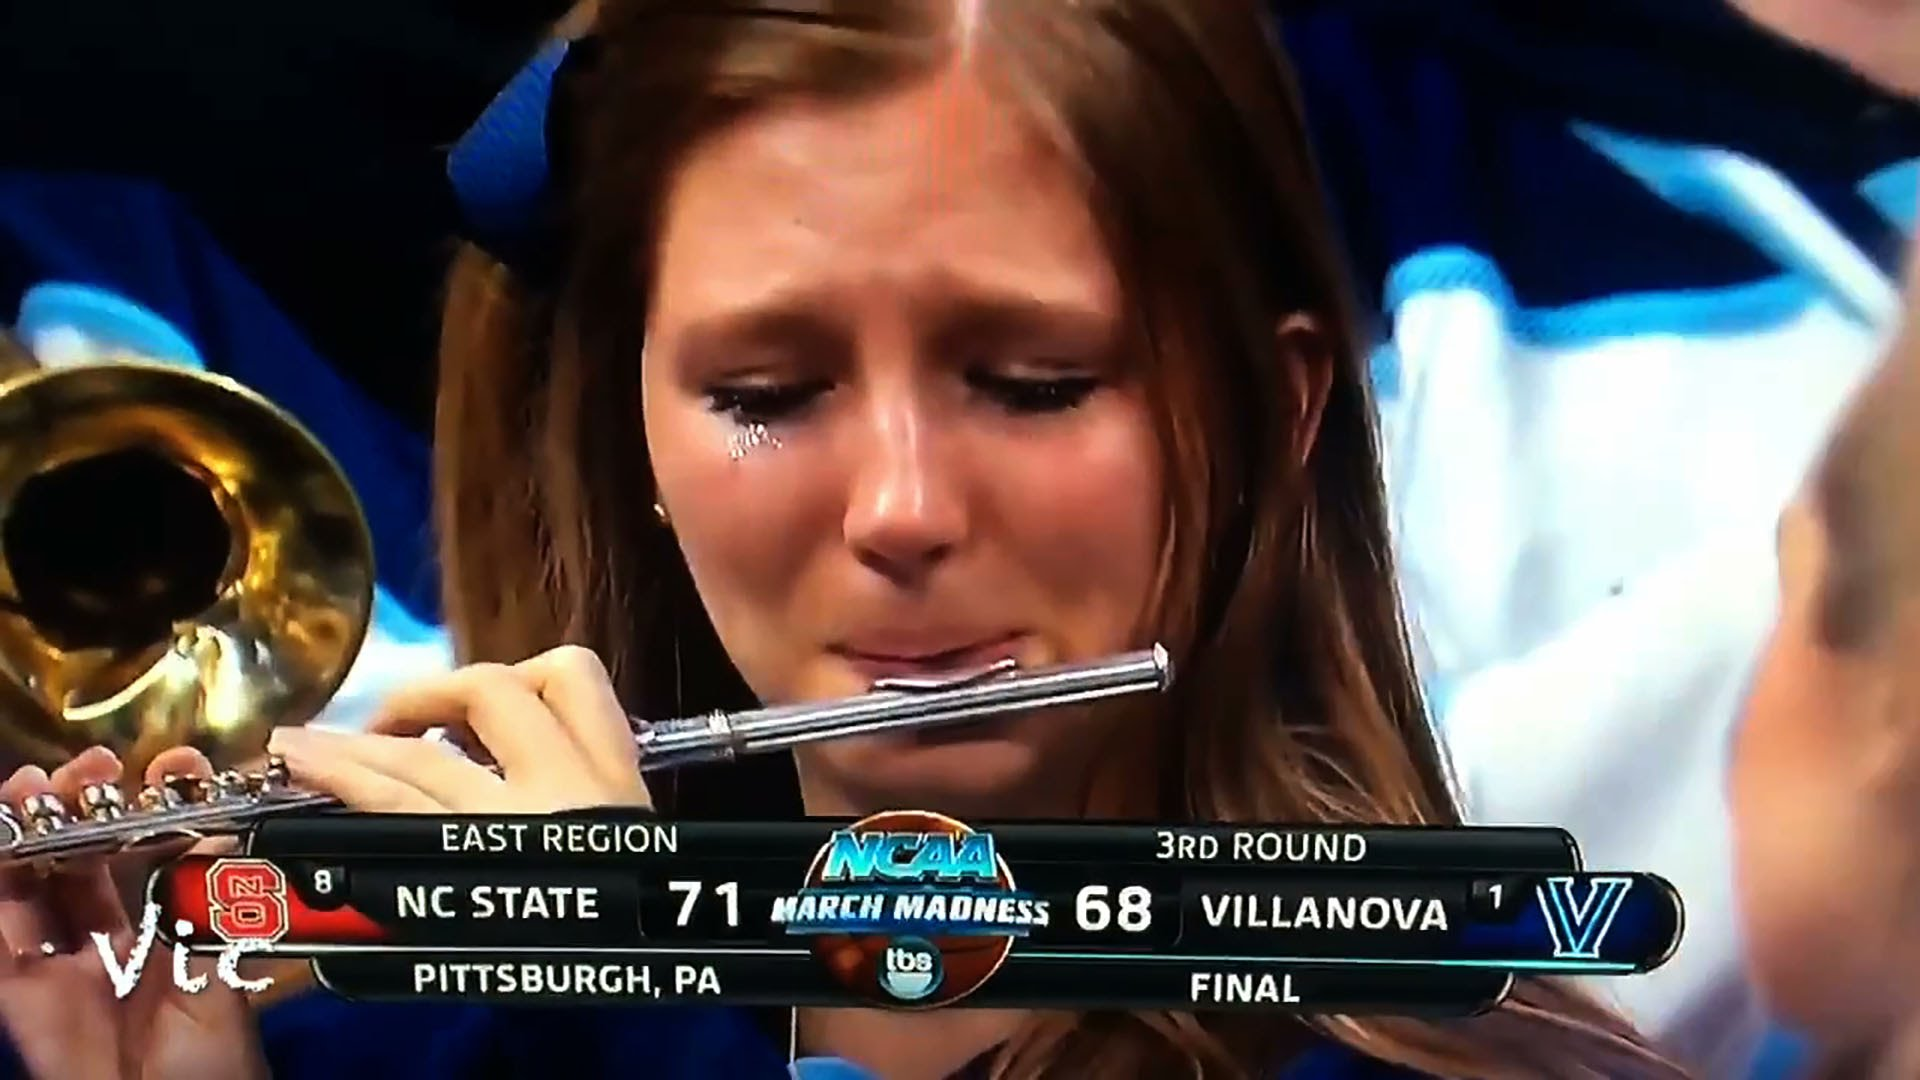 Villanova piccolo girl